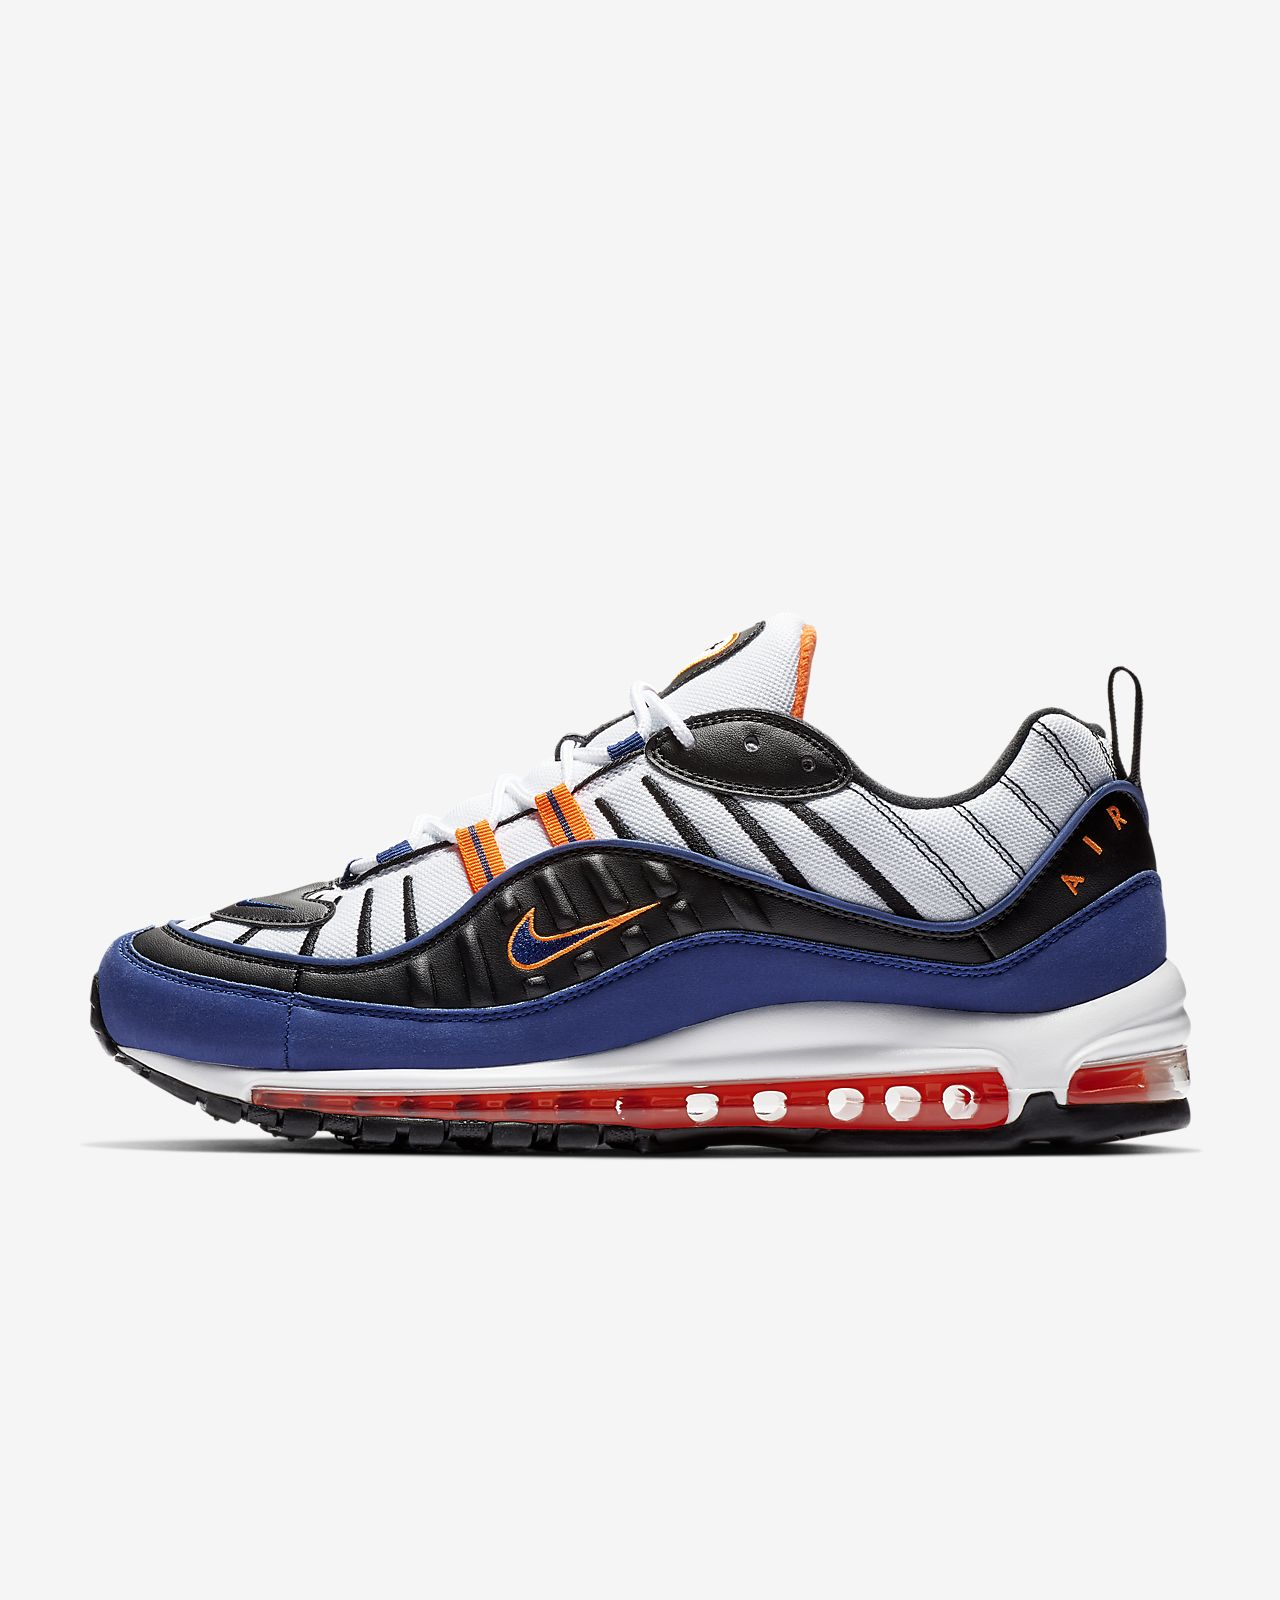 reputable site 56c47 377e8 ... Chaussure Nike Air Max 98 pour Homme